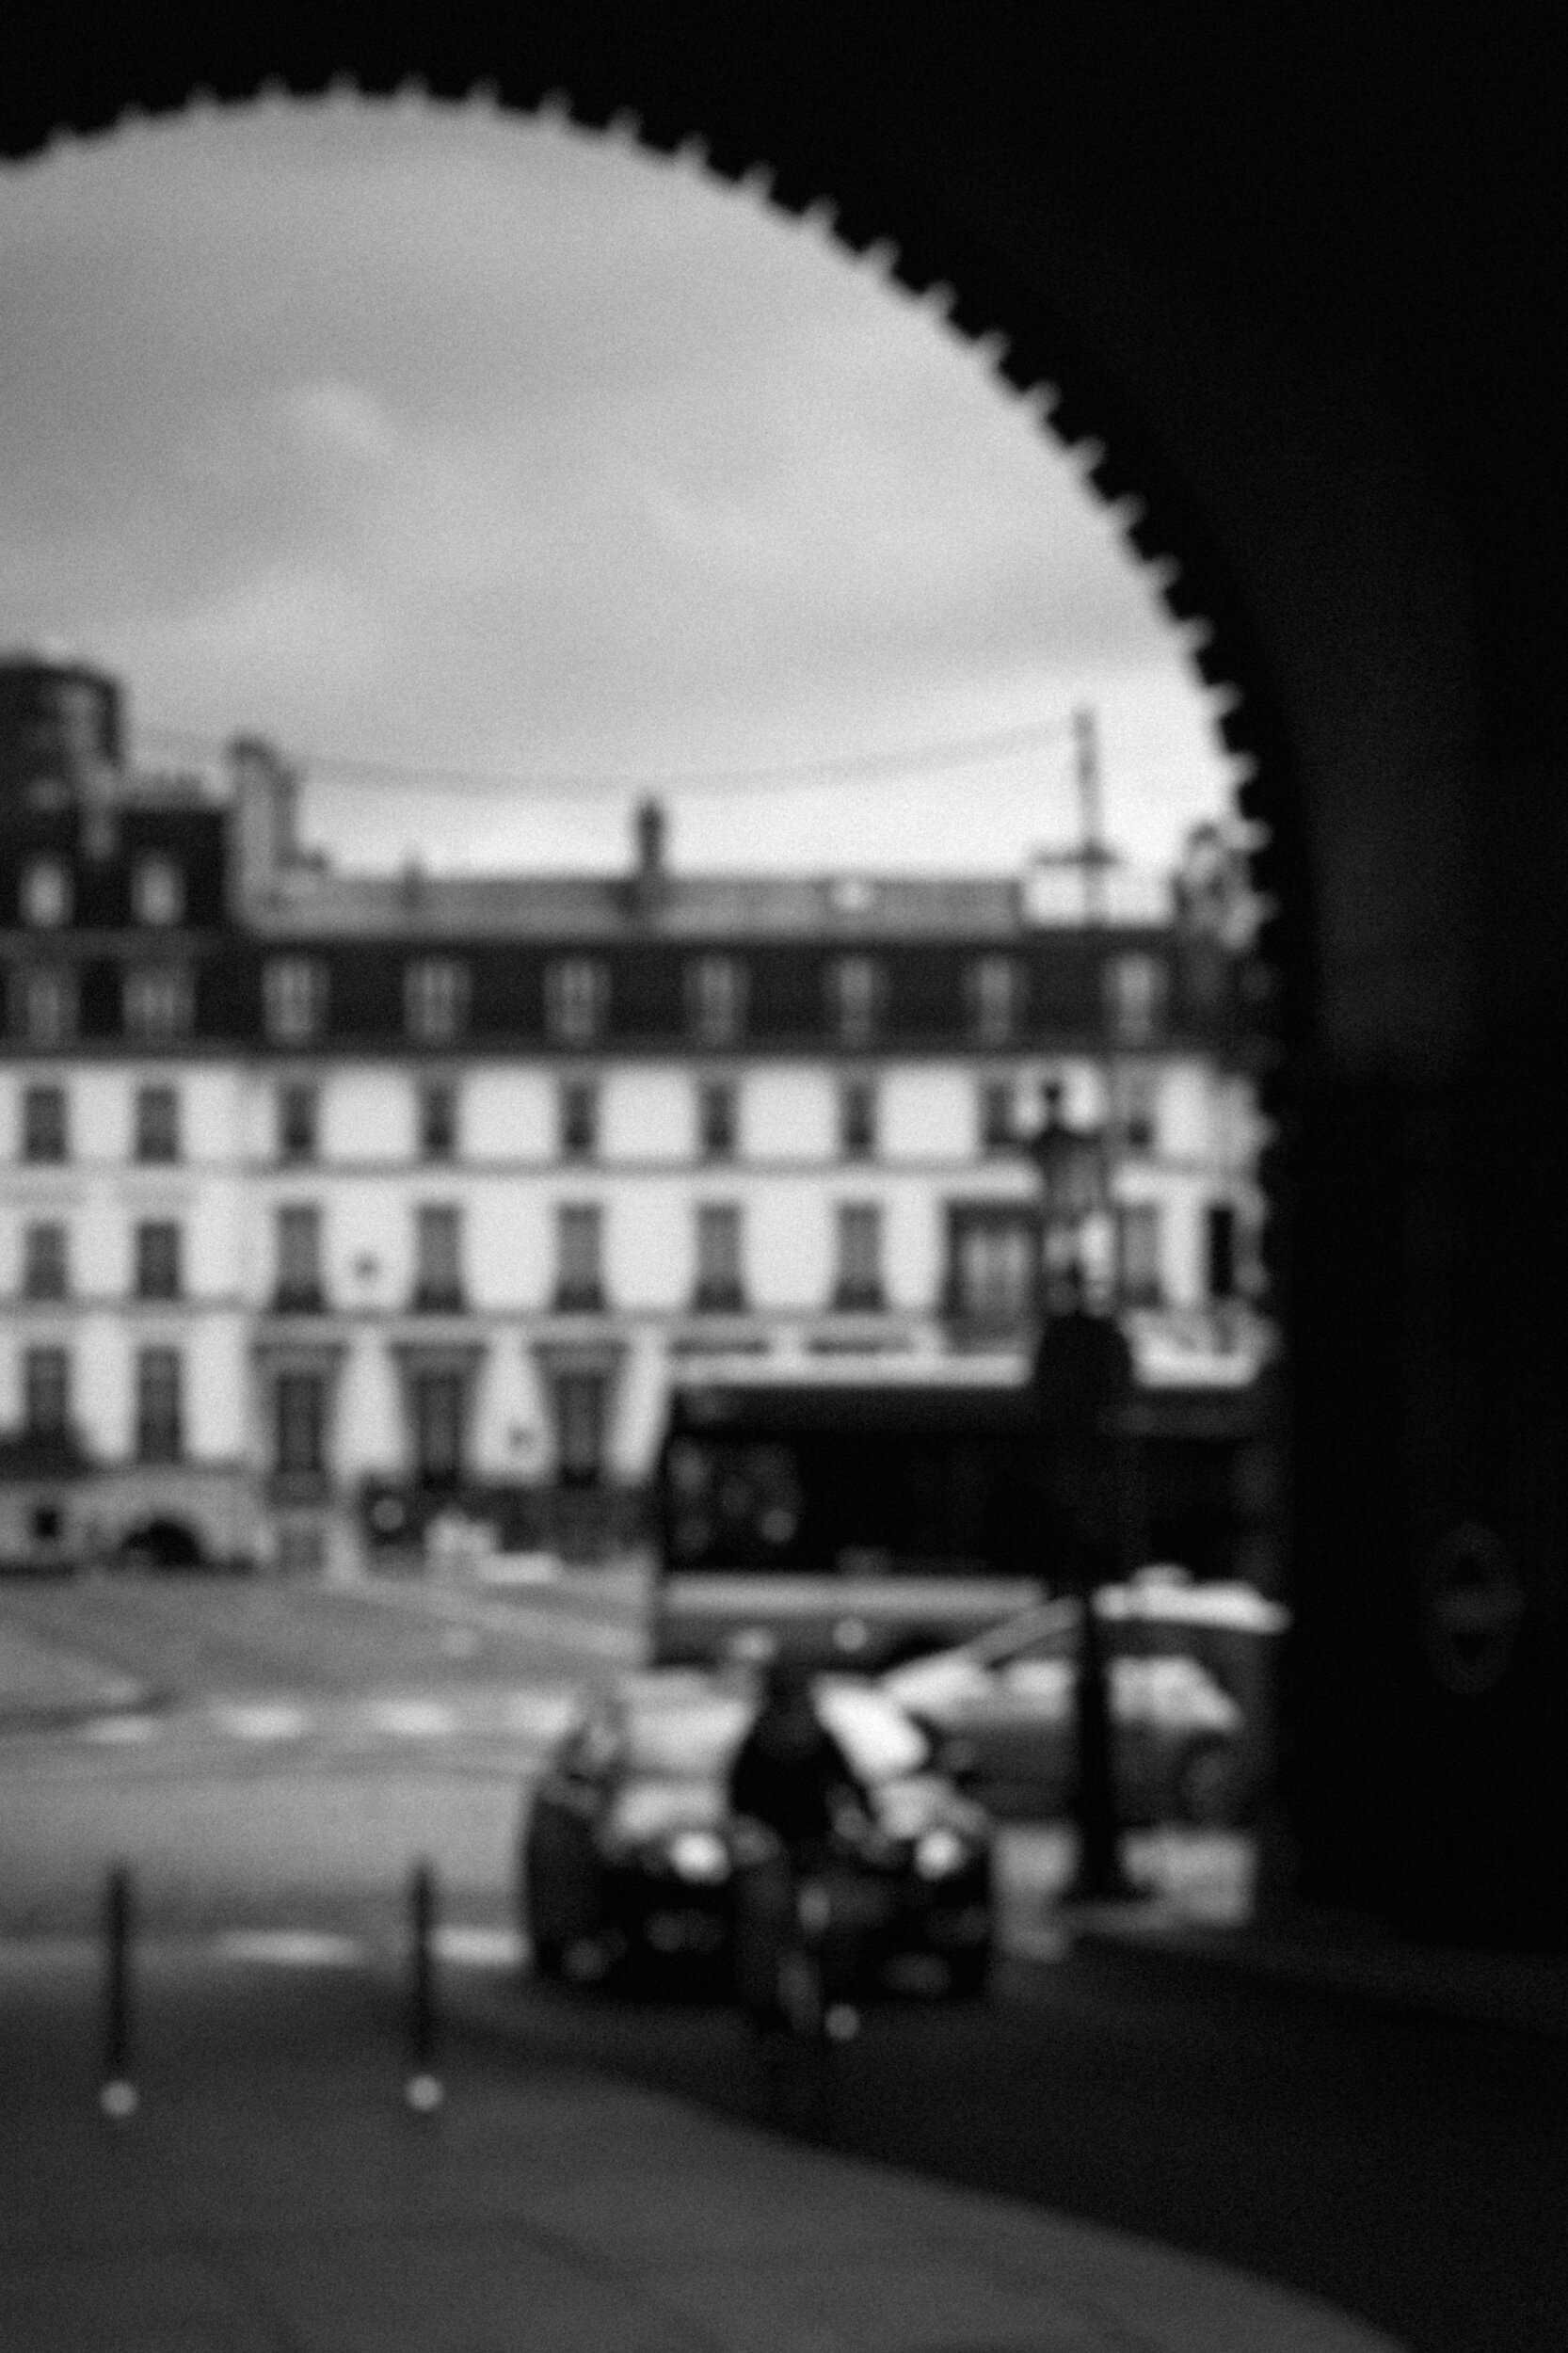 We walked by hours without knowing our final destination.  And then now I know our destination was perfectly defined by our heart.  Without being conscious, we were designing our past, our present and our future.  Paris, 2017.